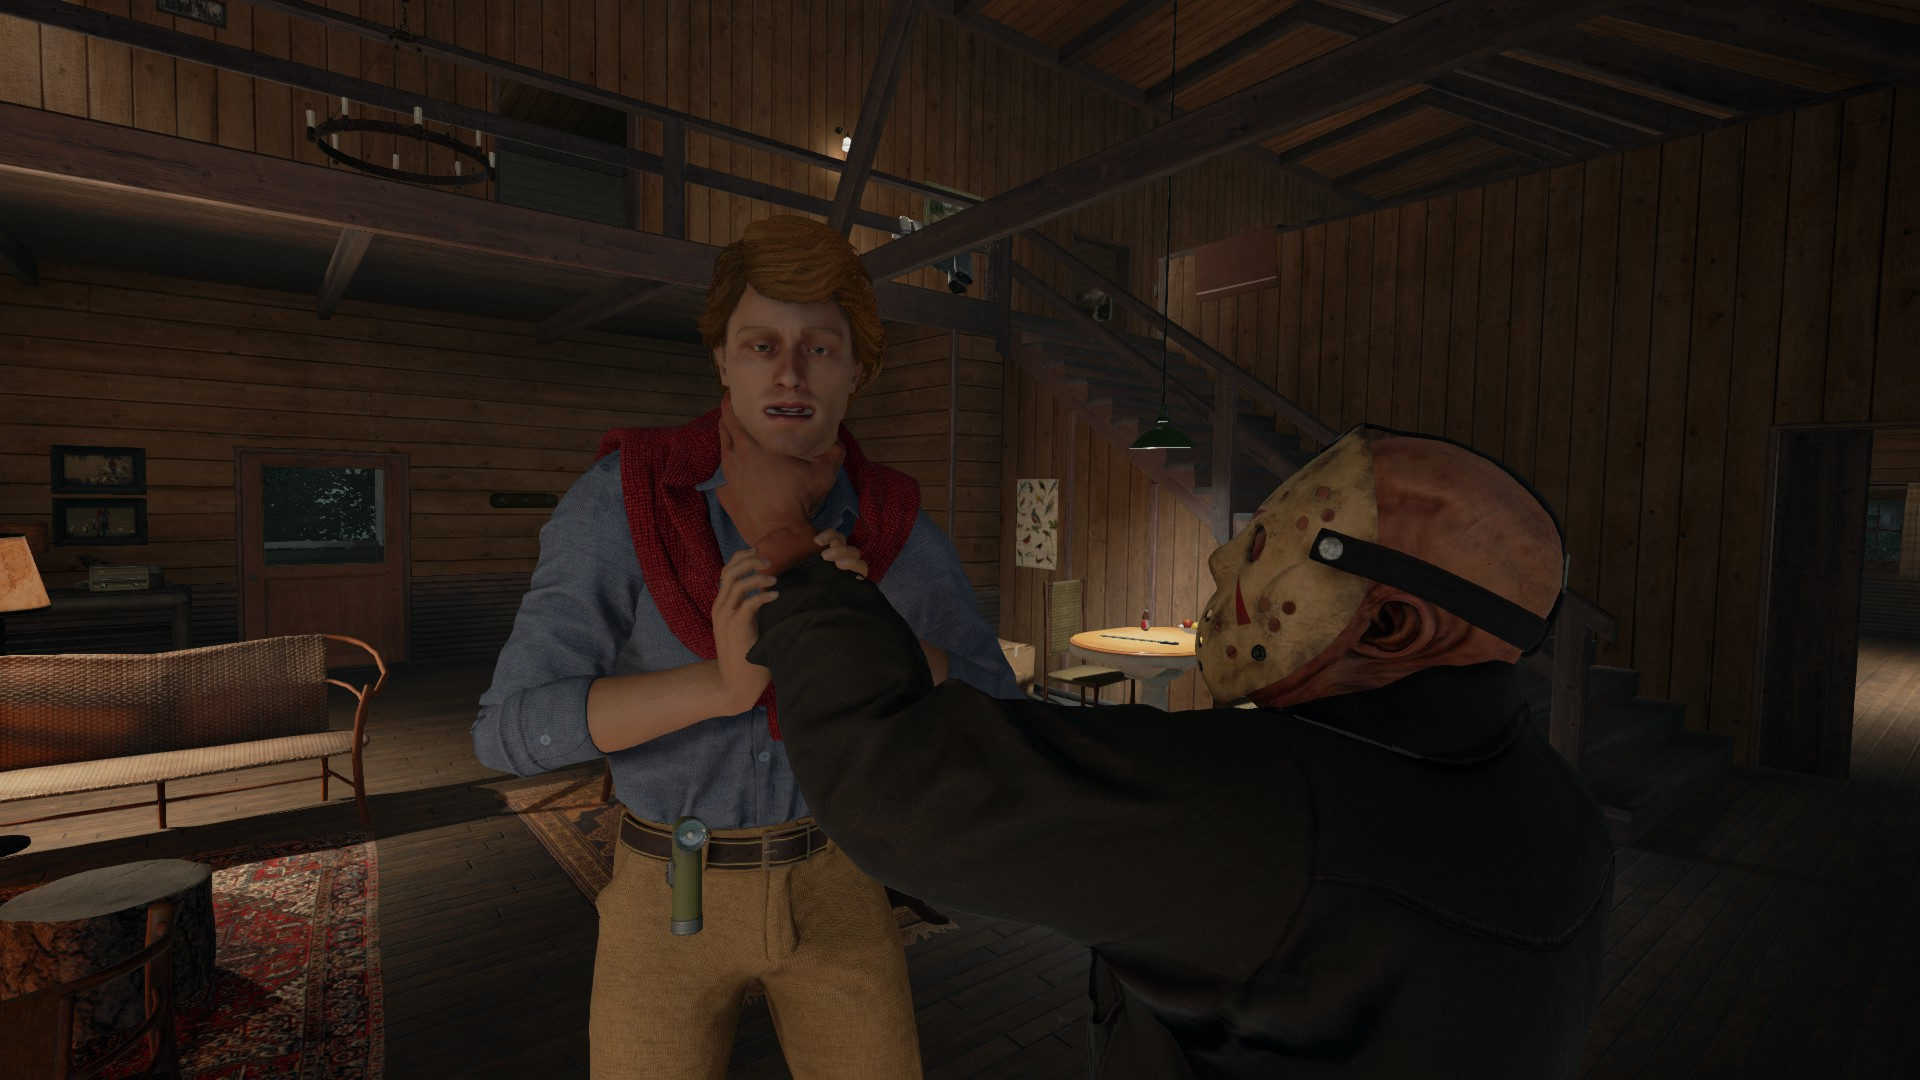 Depending on the amount of people in your game, the chances of you playing as Jason are slim.